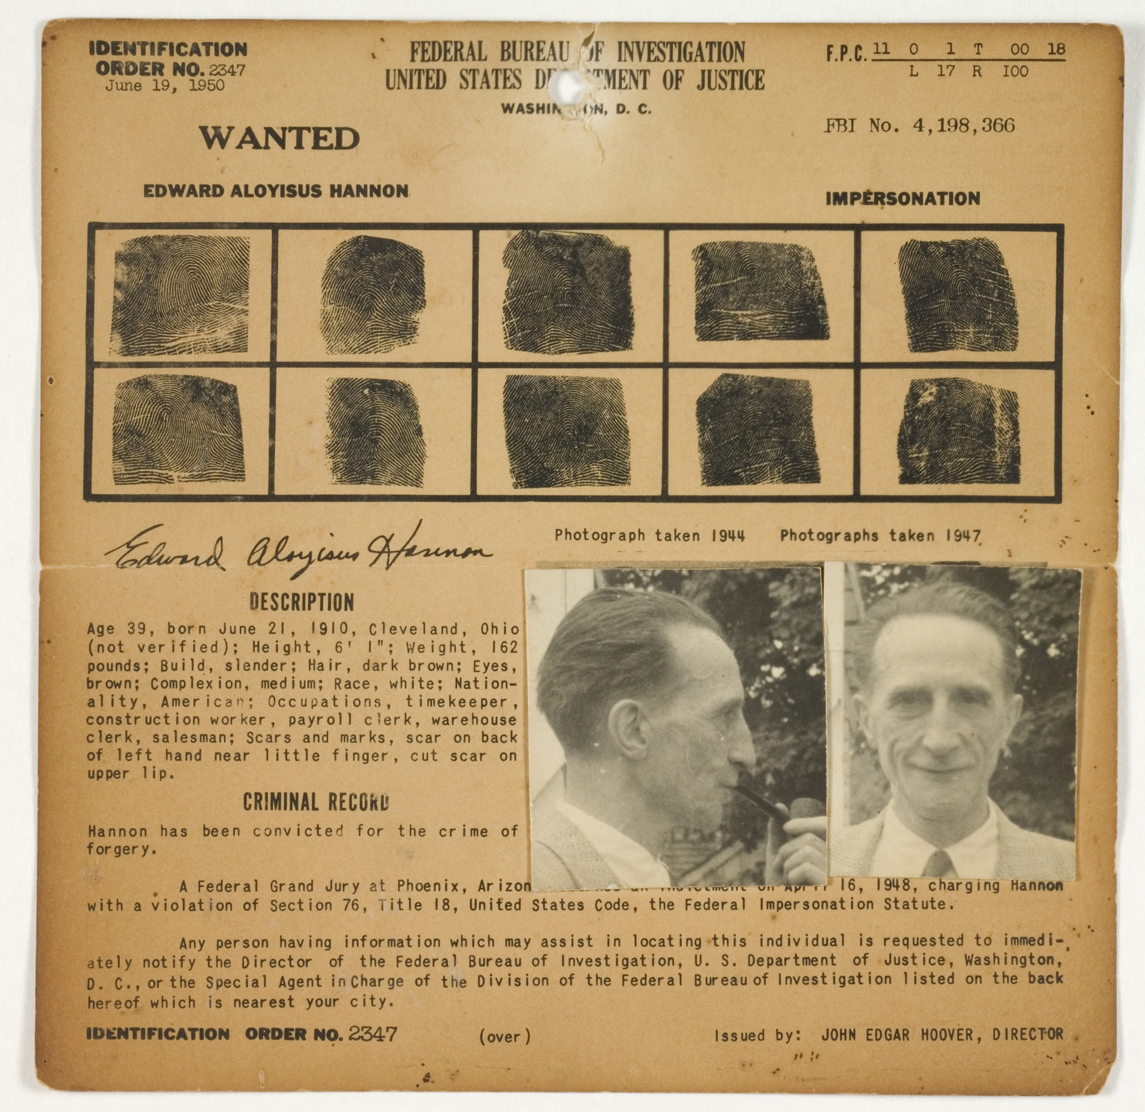 FBI Wanted Notice: Edward Aloyisus Hannon (Marcel Duchamp), Wanted for the Crime of Impersonation, by Julien Levy, c. 1950. © Philadelphia Museum of Art, Pennsylvania, PA, USA/ Bridgeman Images